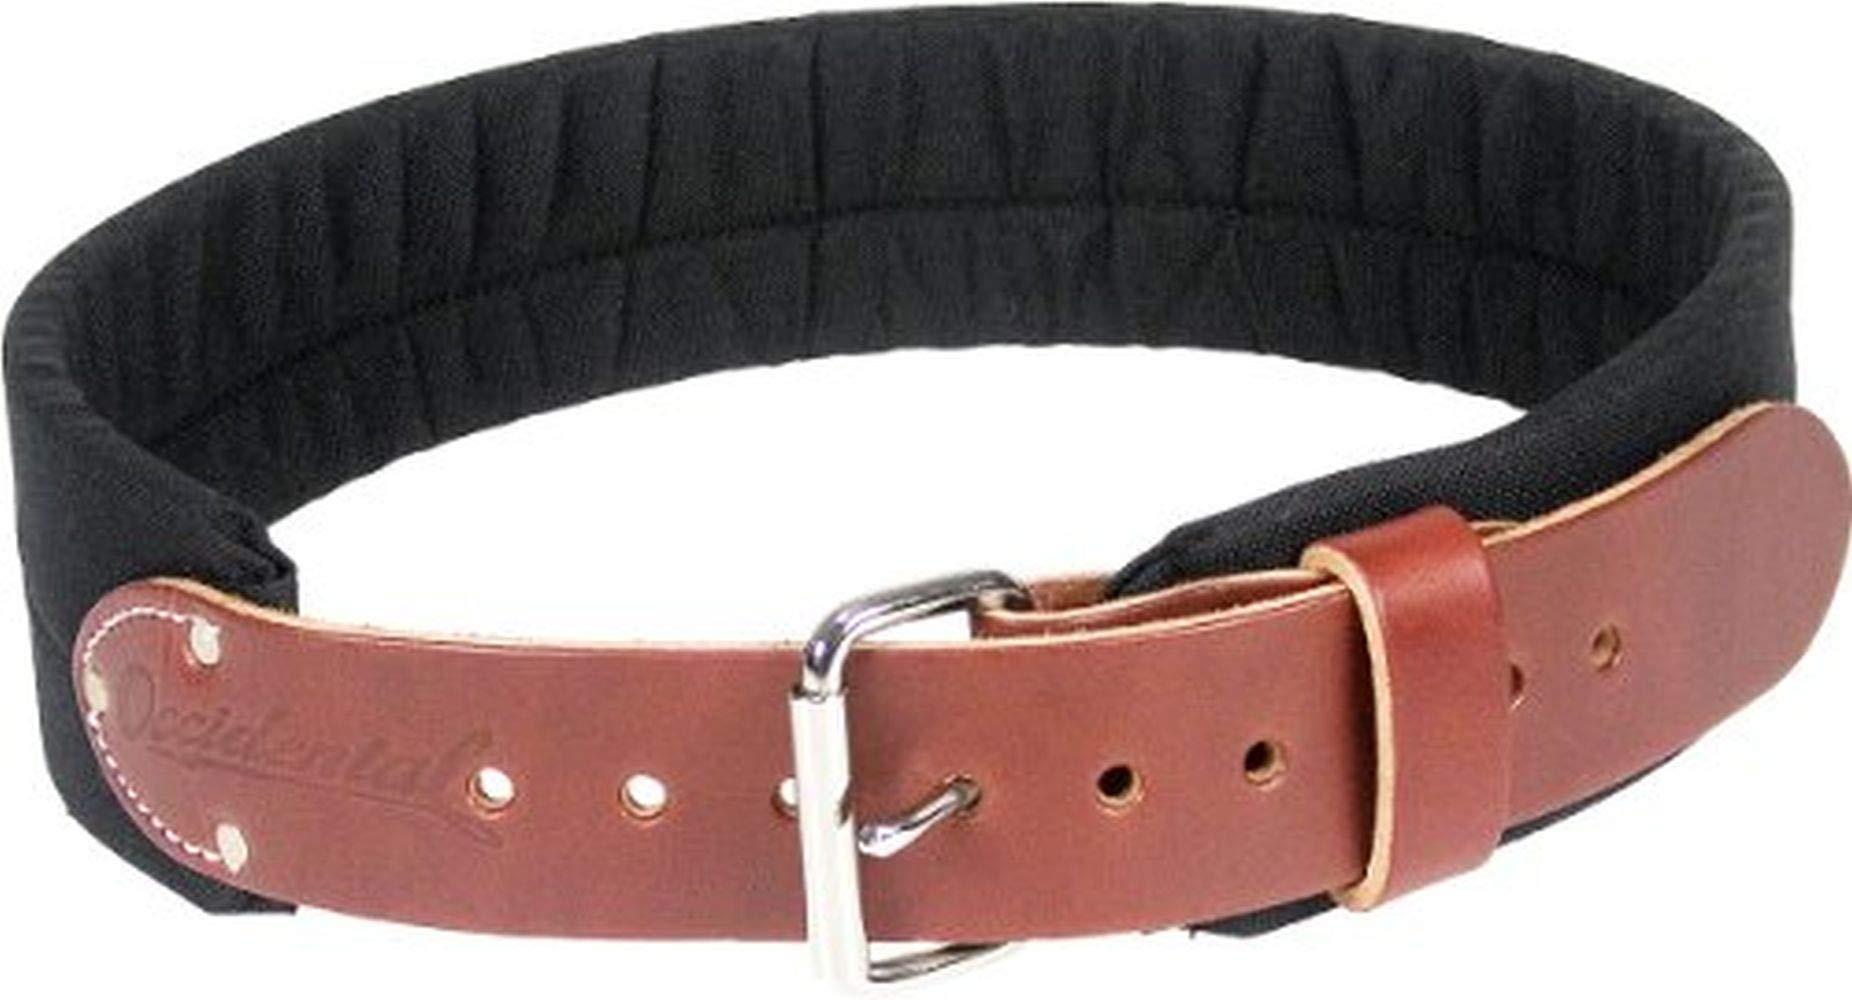 Occidental Leather 8003 LG 3in Leather & Nylon by Occidental Leather